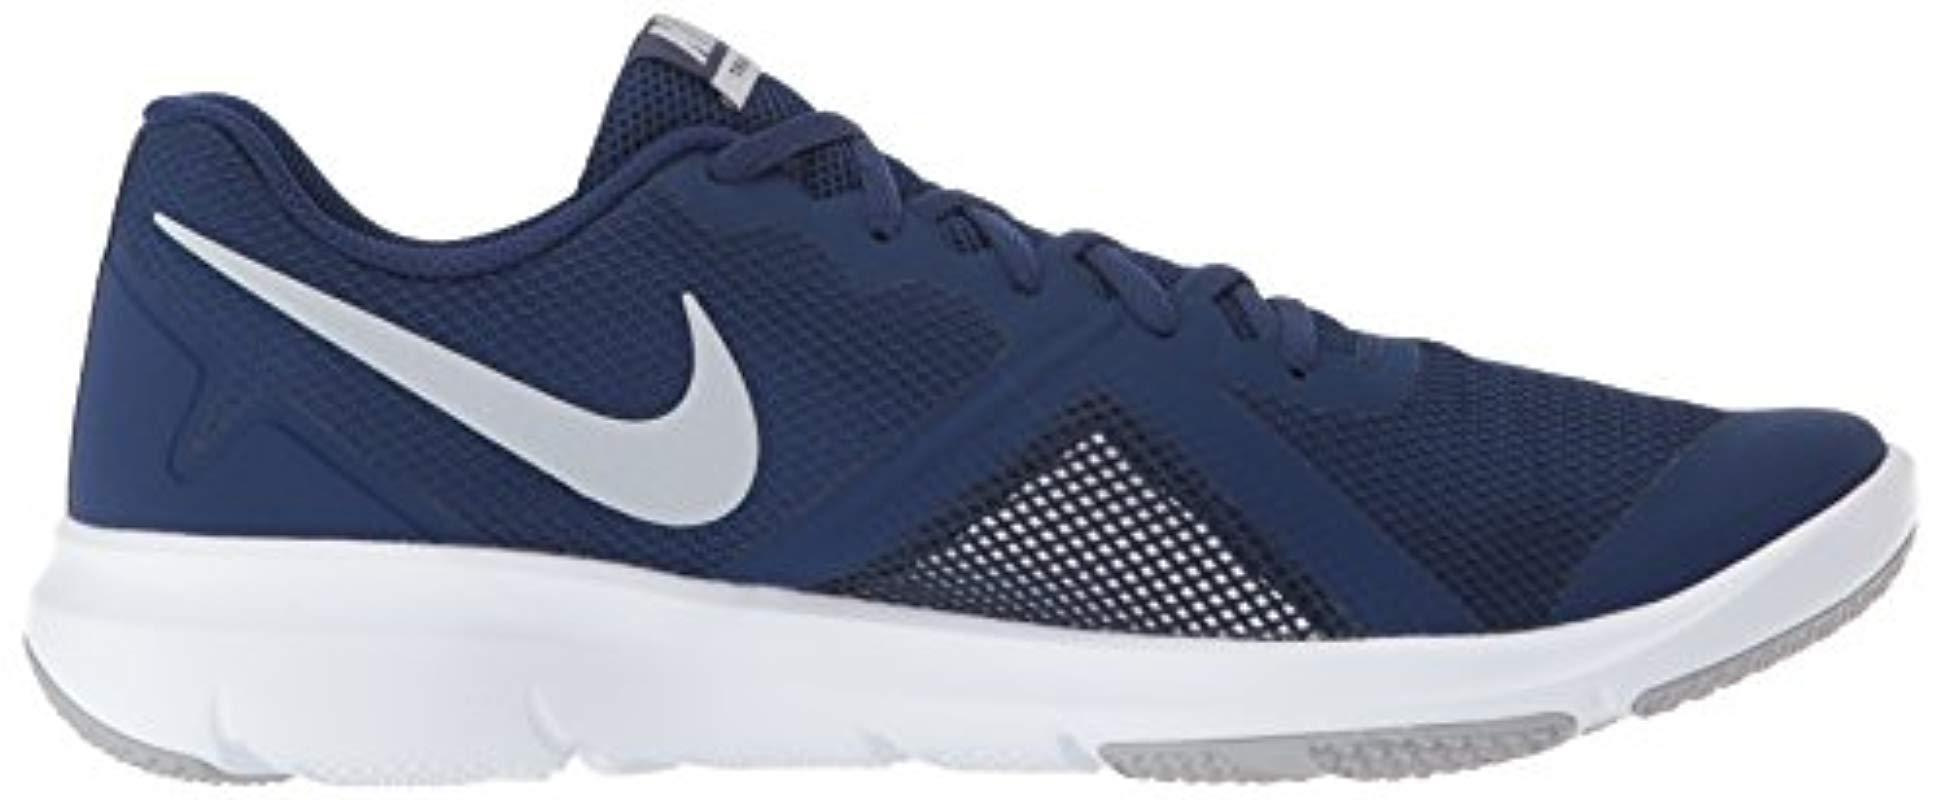 Nike Rubber Flex Control Ii Competition Running Shoes in Blue for Men